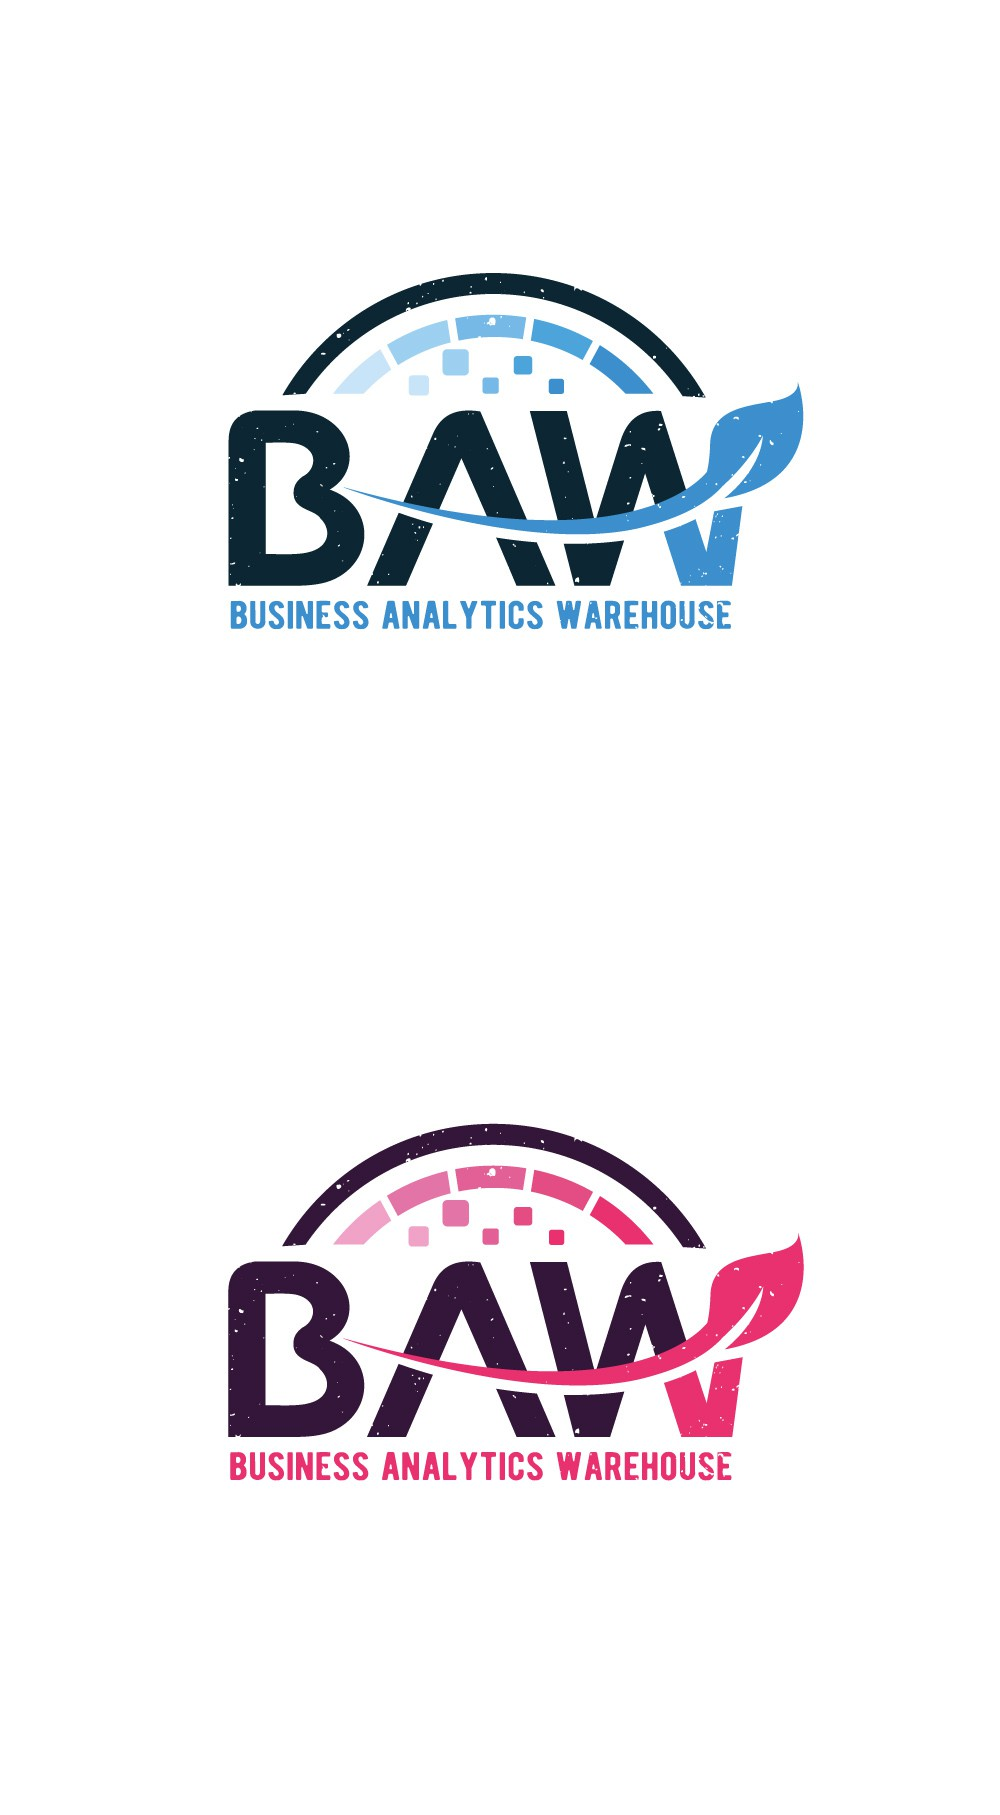 create a striking logo for our business analytics warehouse